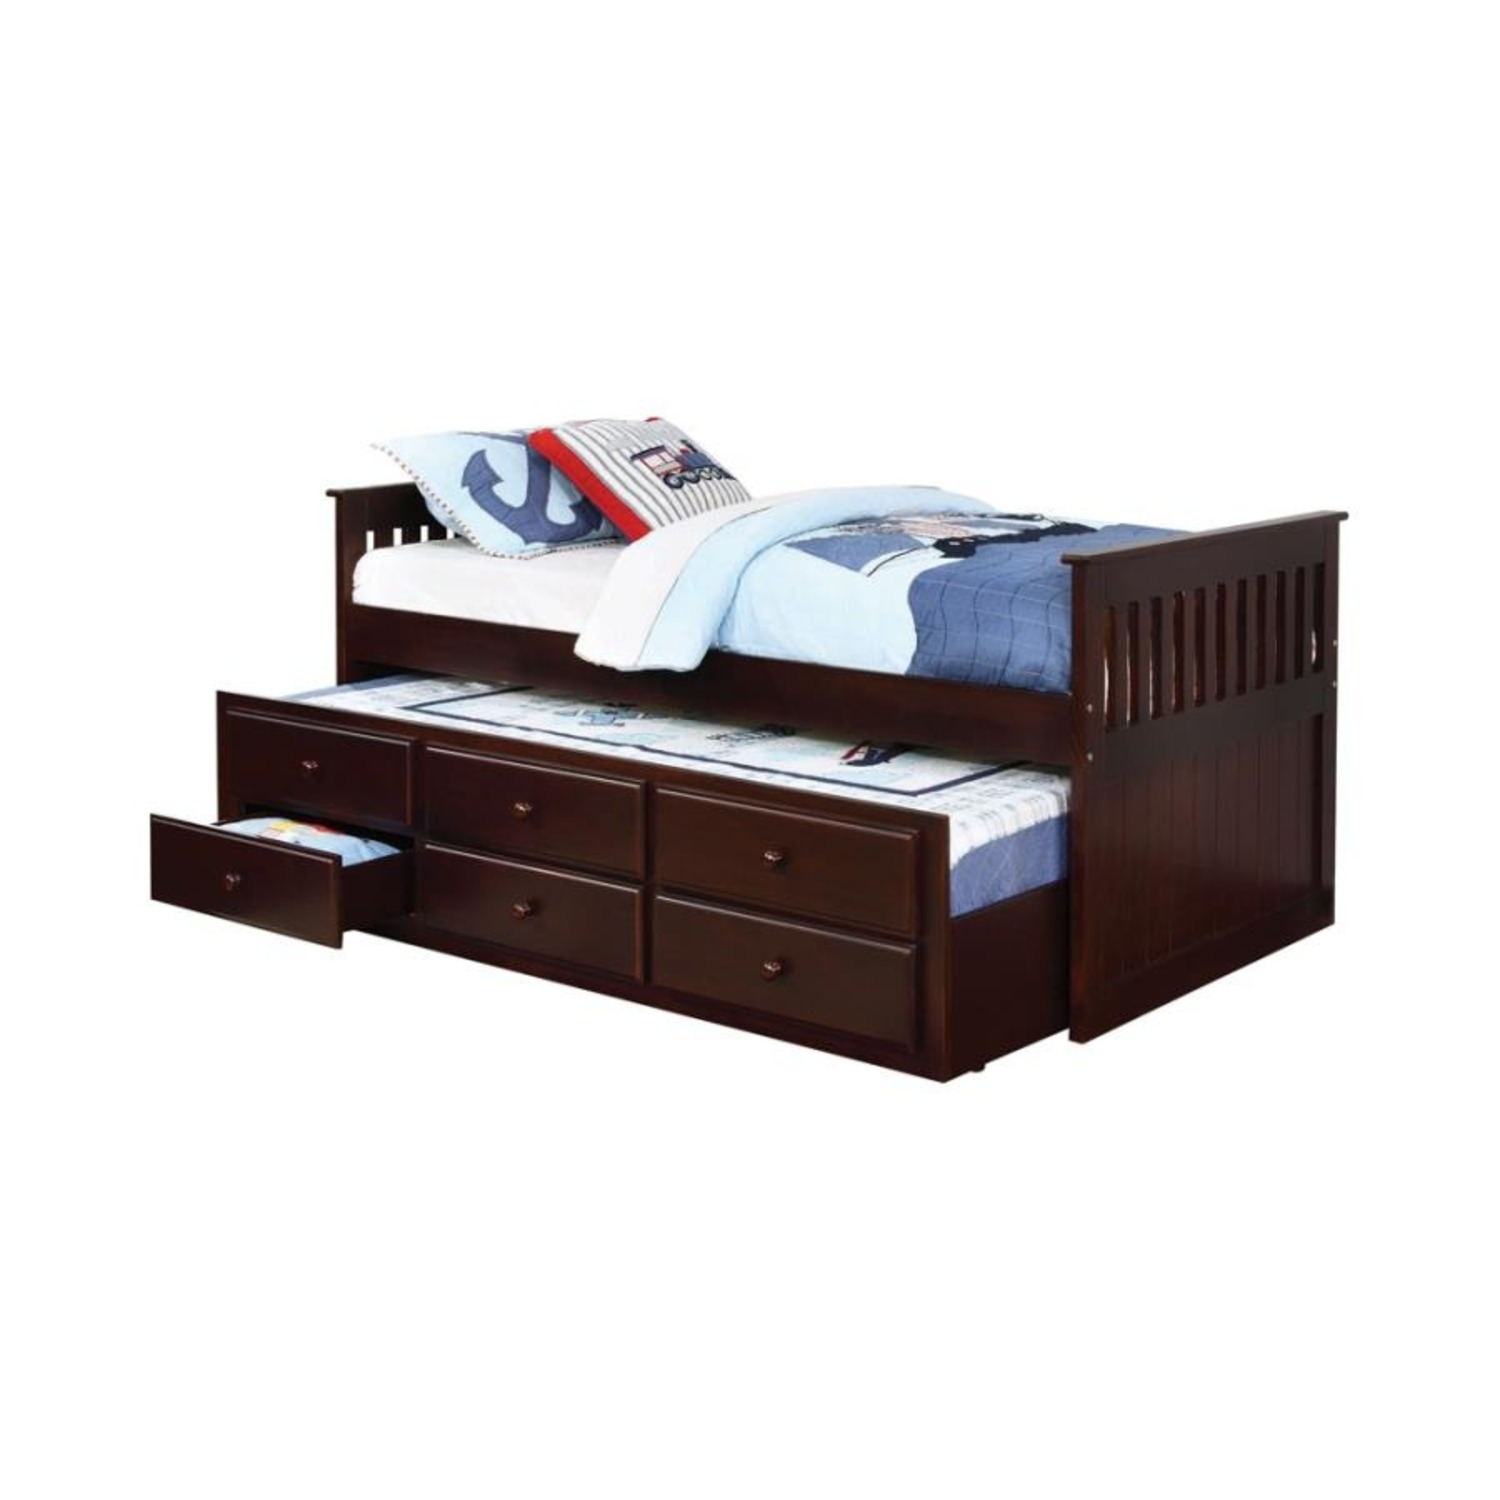 Twin Bed W/ Storage Trundle In Cappuccino Finish - image-0